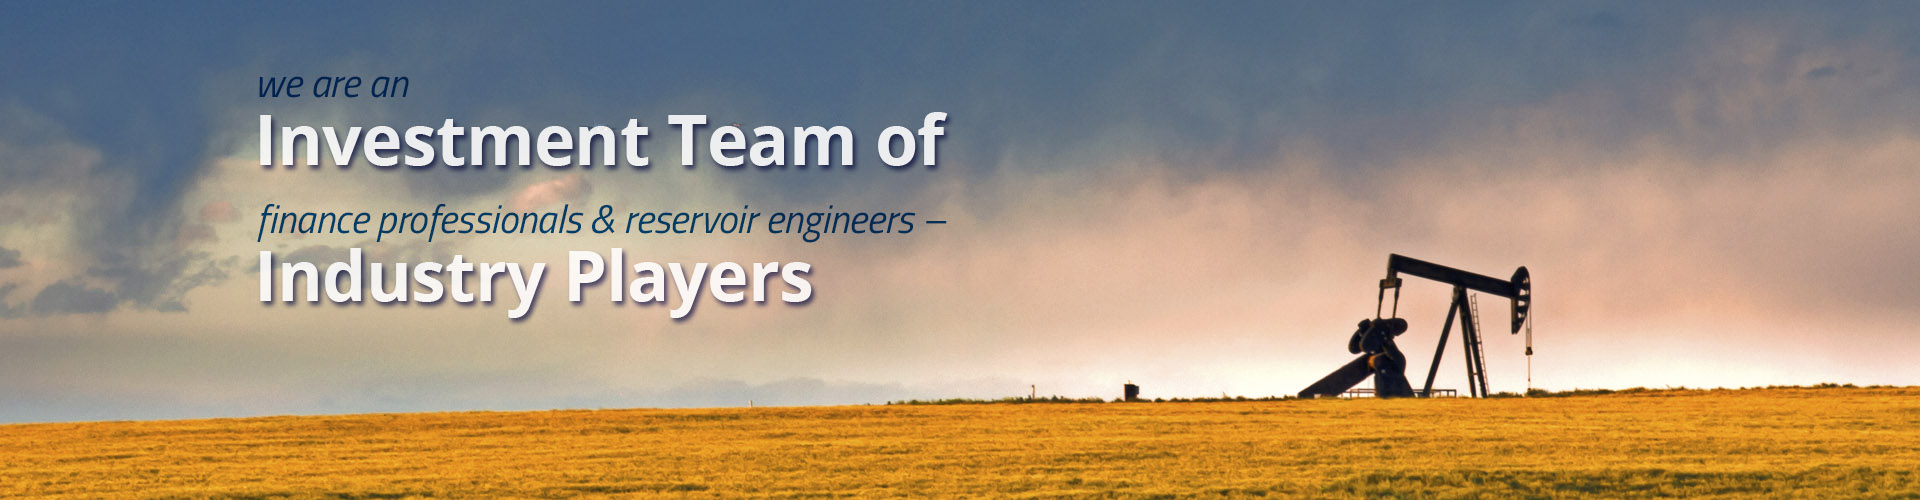 We are an investment team of financial professionals and reservoir engineers -- industry players